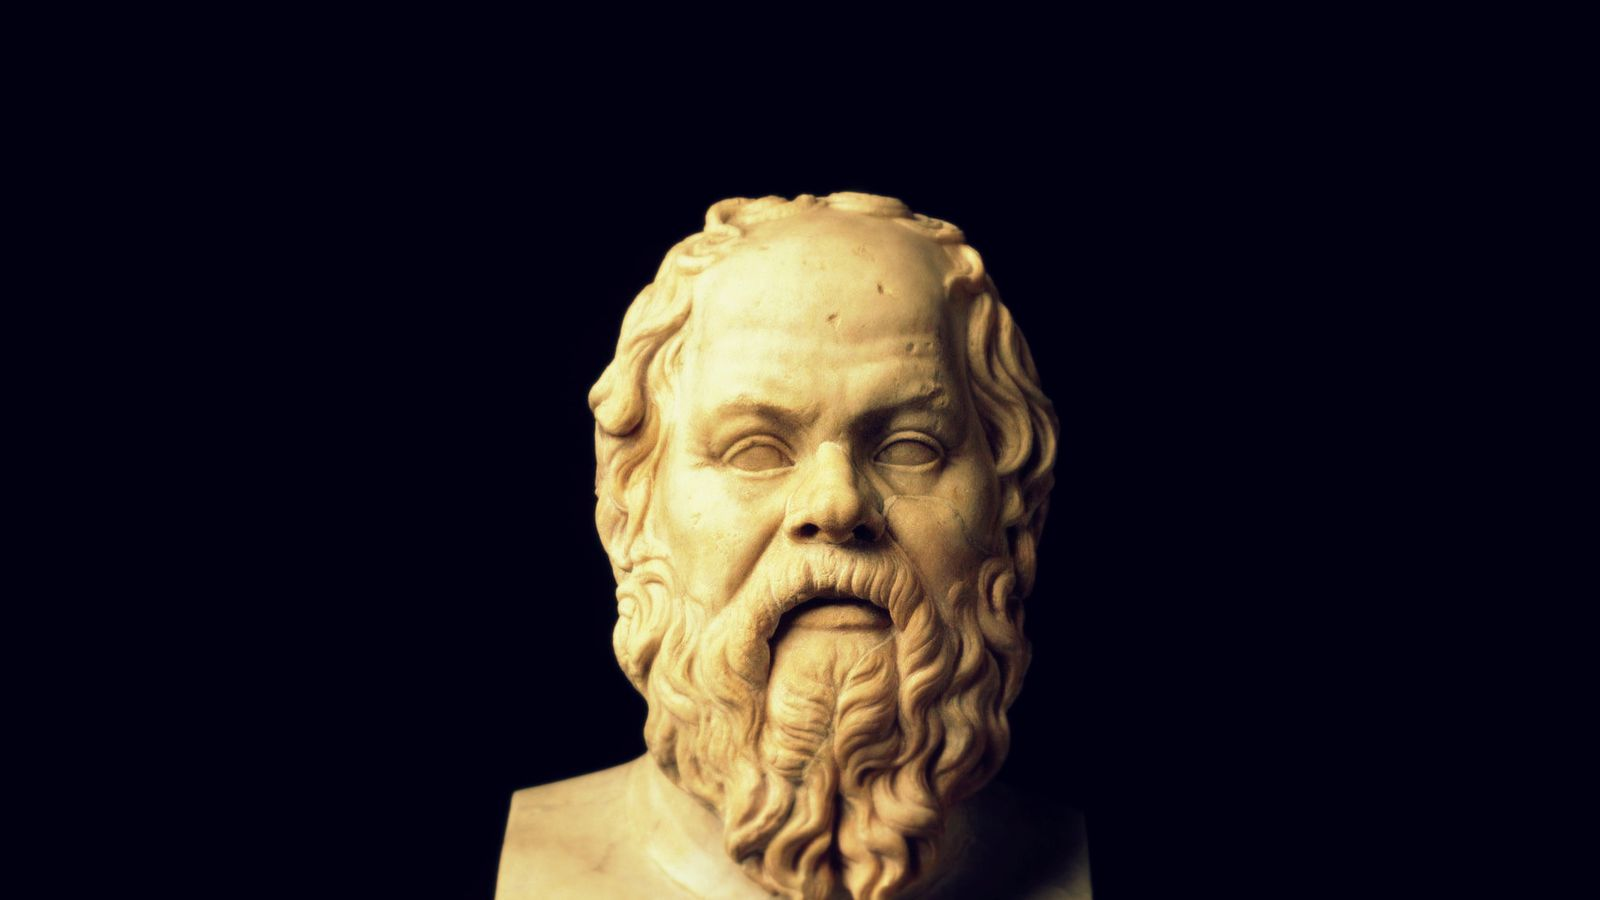 what is the good life according to socrates According to his biographers plato and xenophon , socrates did not just search for the meaning of life, but the meaning of our own lives the hemlock cup: socrates, athens and the search for the good life, by bettany hughes, is published by jonathan cape (rrp £25.